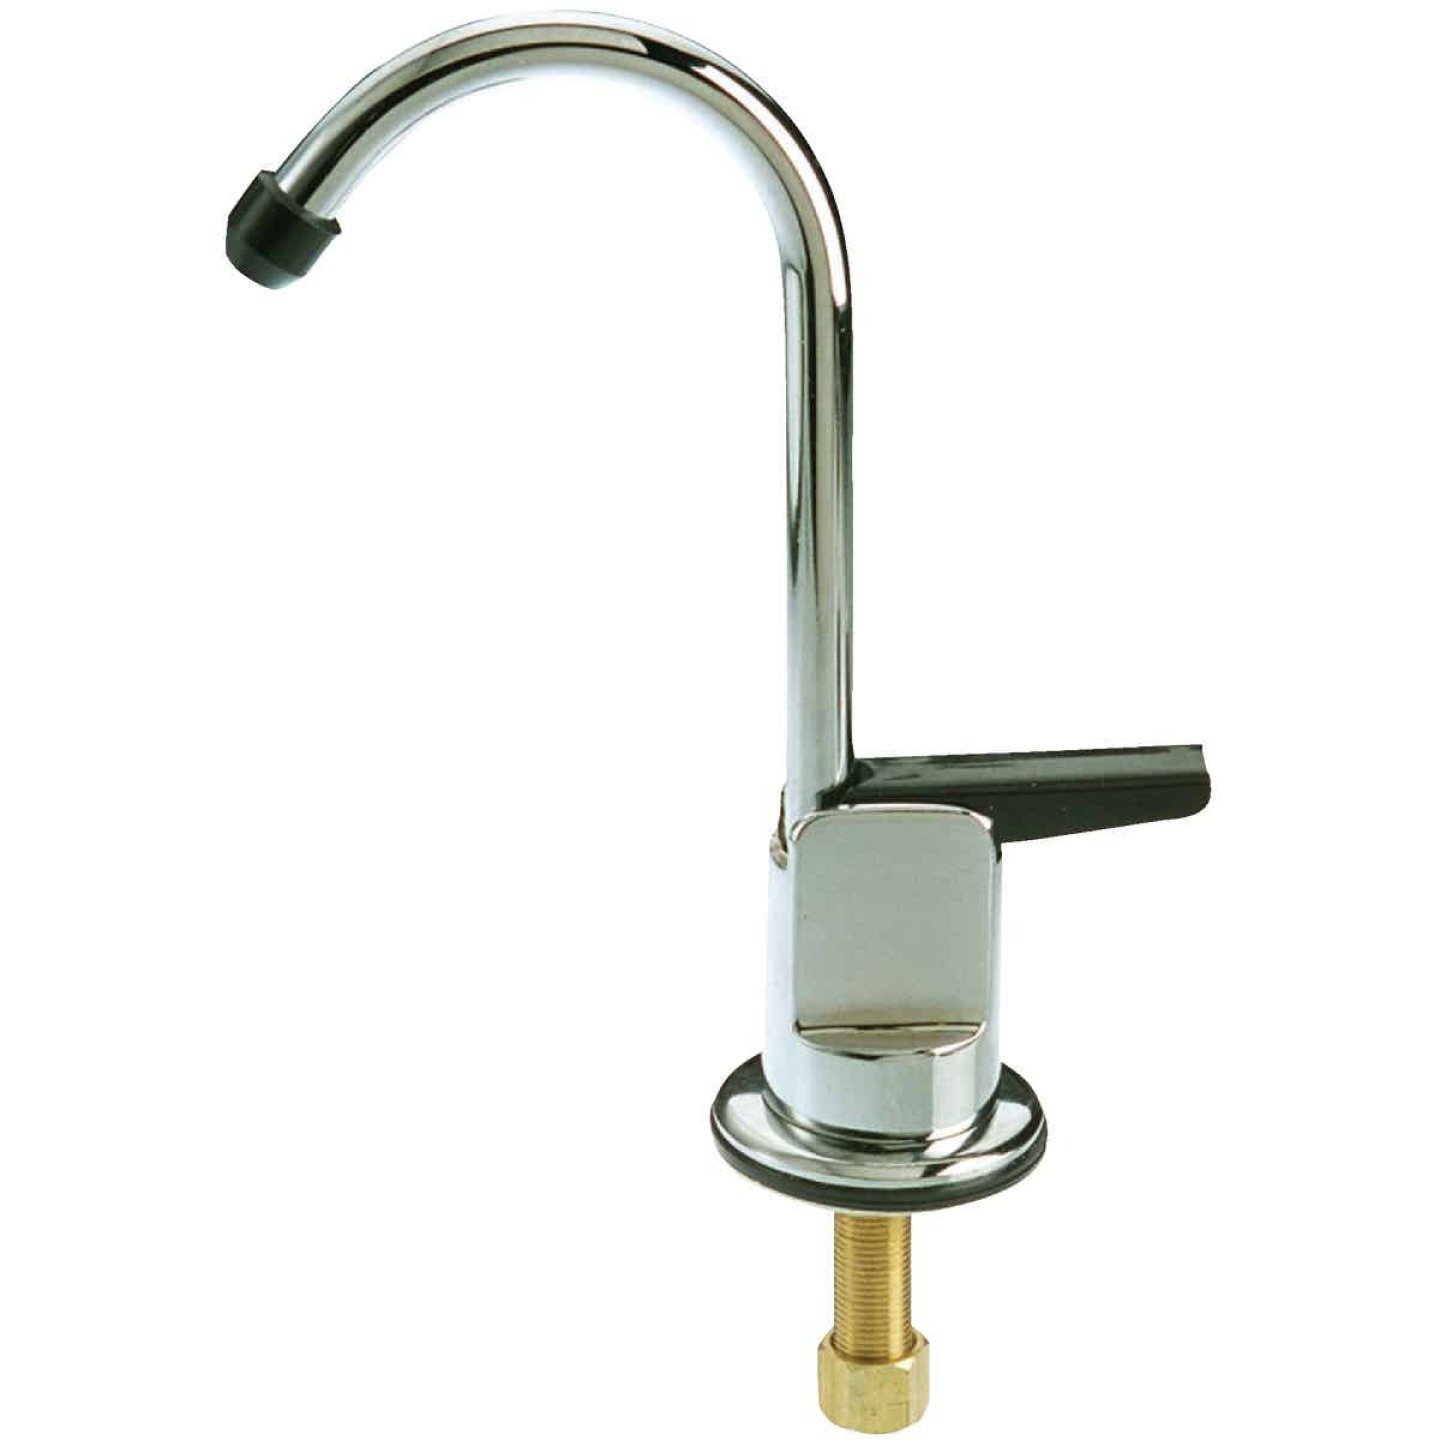 B & K Chrome-Plated Compression Inlet Drinking Water Faucet Image 1